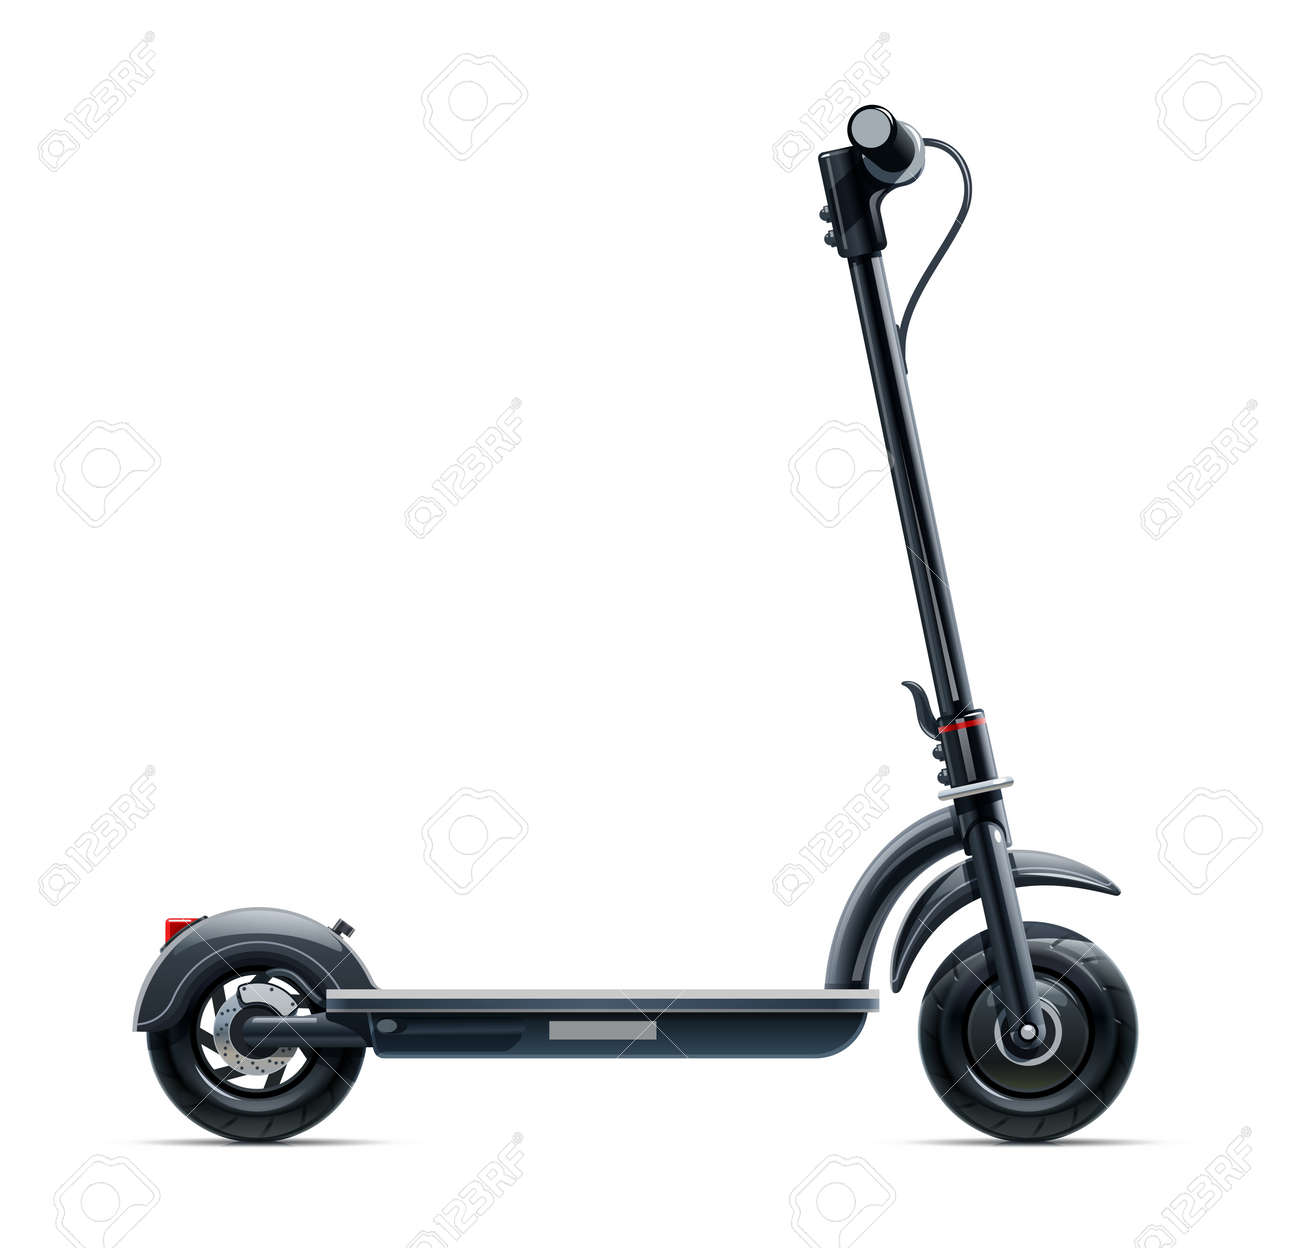 Black scooter. Urban transport. Eco electric vehicle. Street cycle. Isolated on white background. - 125577820